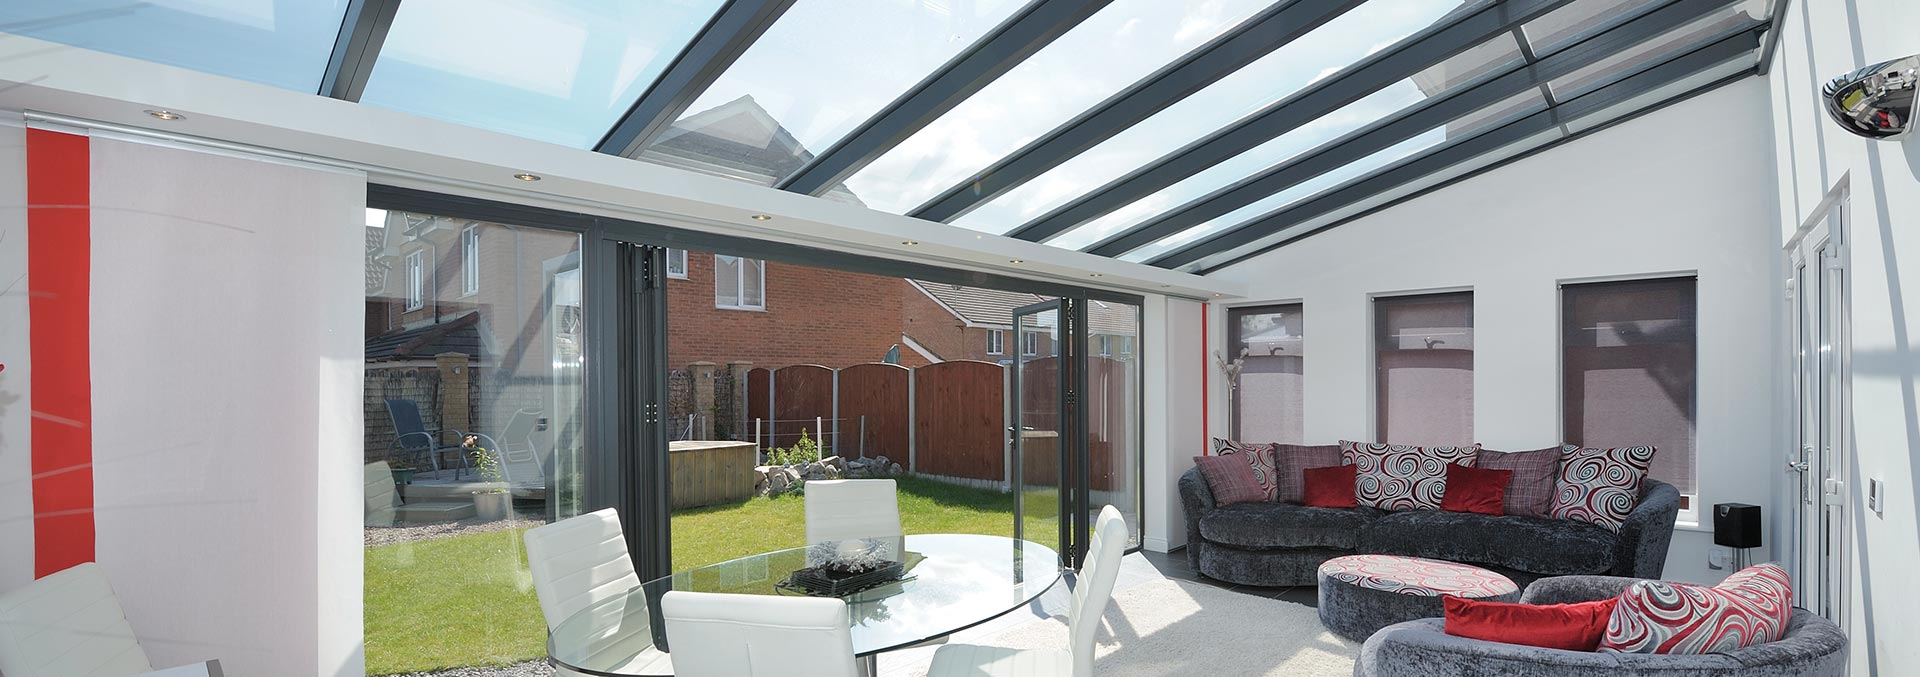 Lean to style uPVC conservatory with bifolding doors